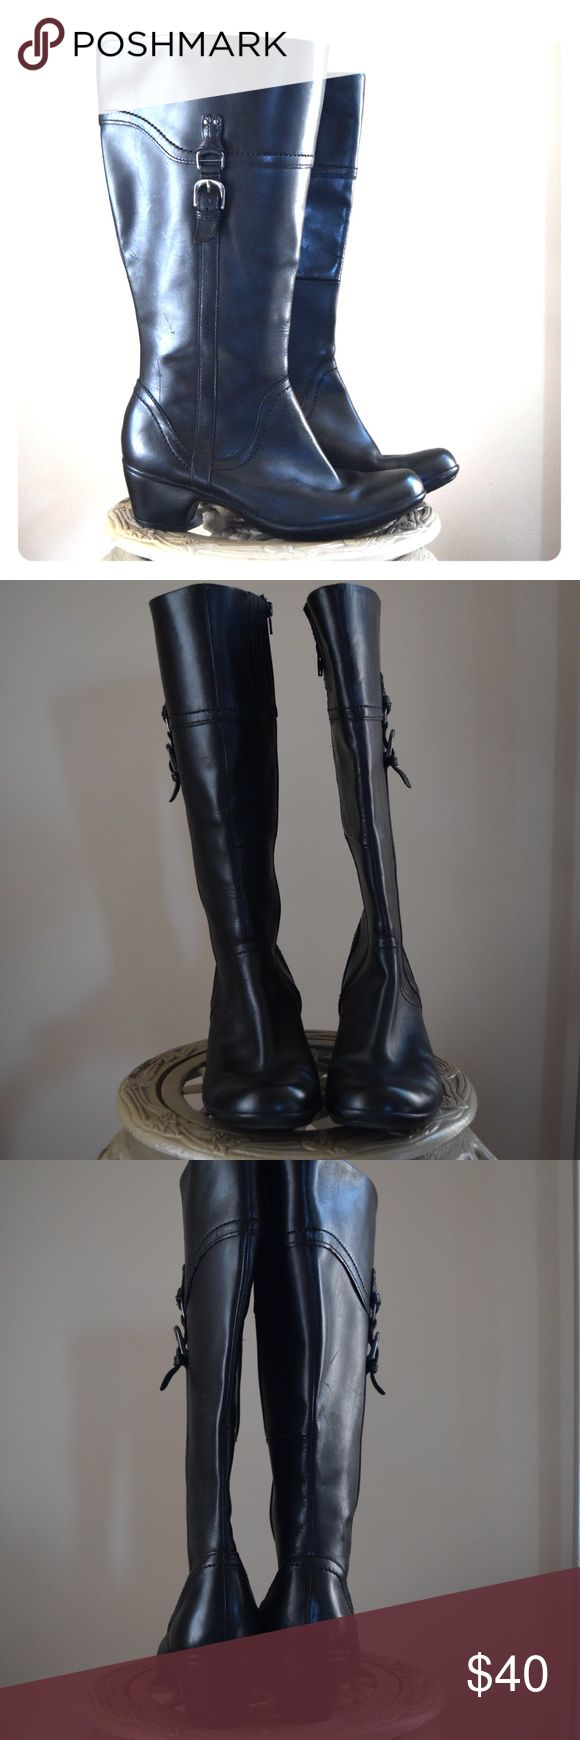 "Black leather Clark's boots Black leather Clark's boots  •size 9.5 •black leather •silver hardware  •2"" heel •excellent condition Clarks Shoes Heeled Boots"